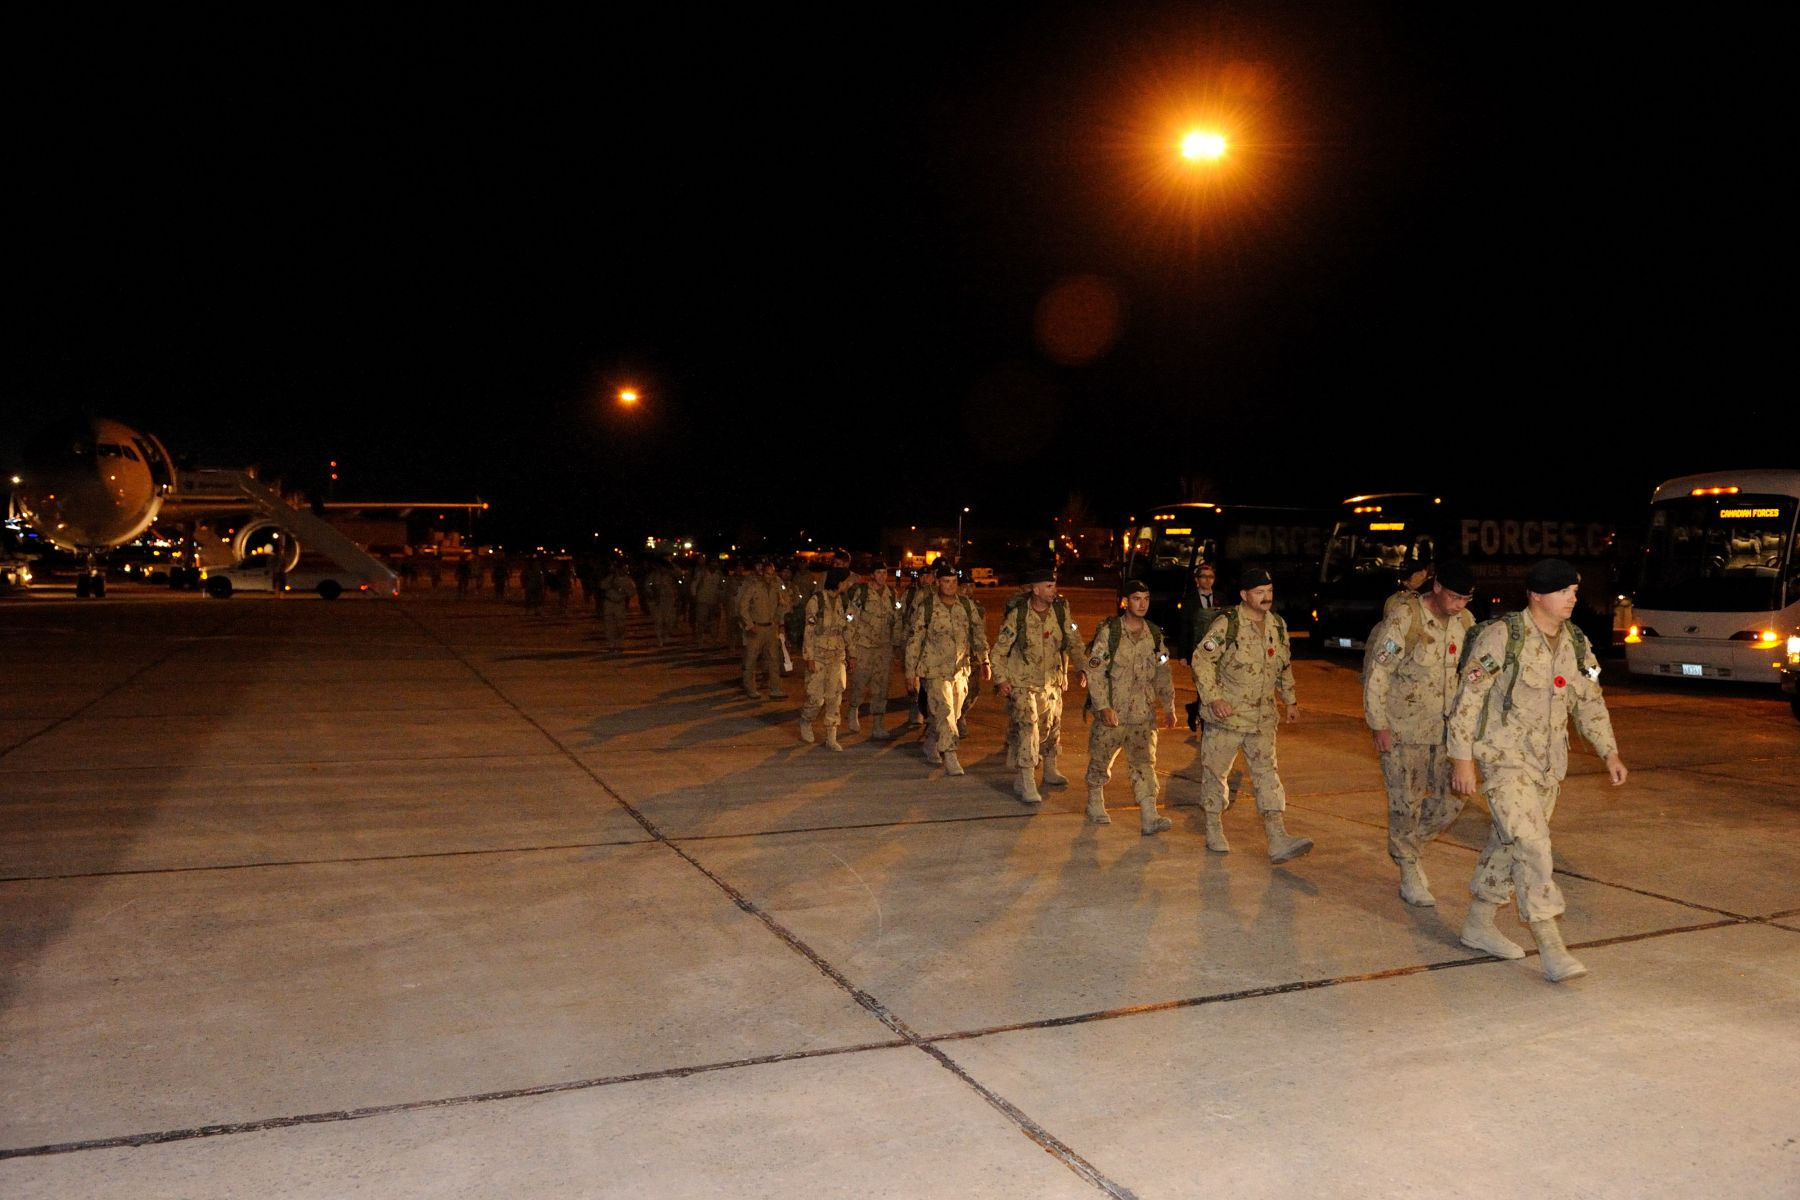 In the evening, the Governor General welcomed back to Canada troops returning from Afghanistan.